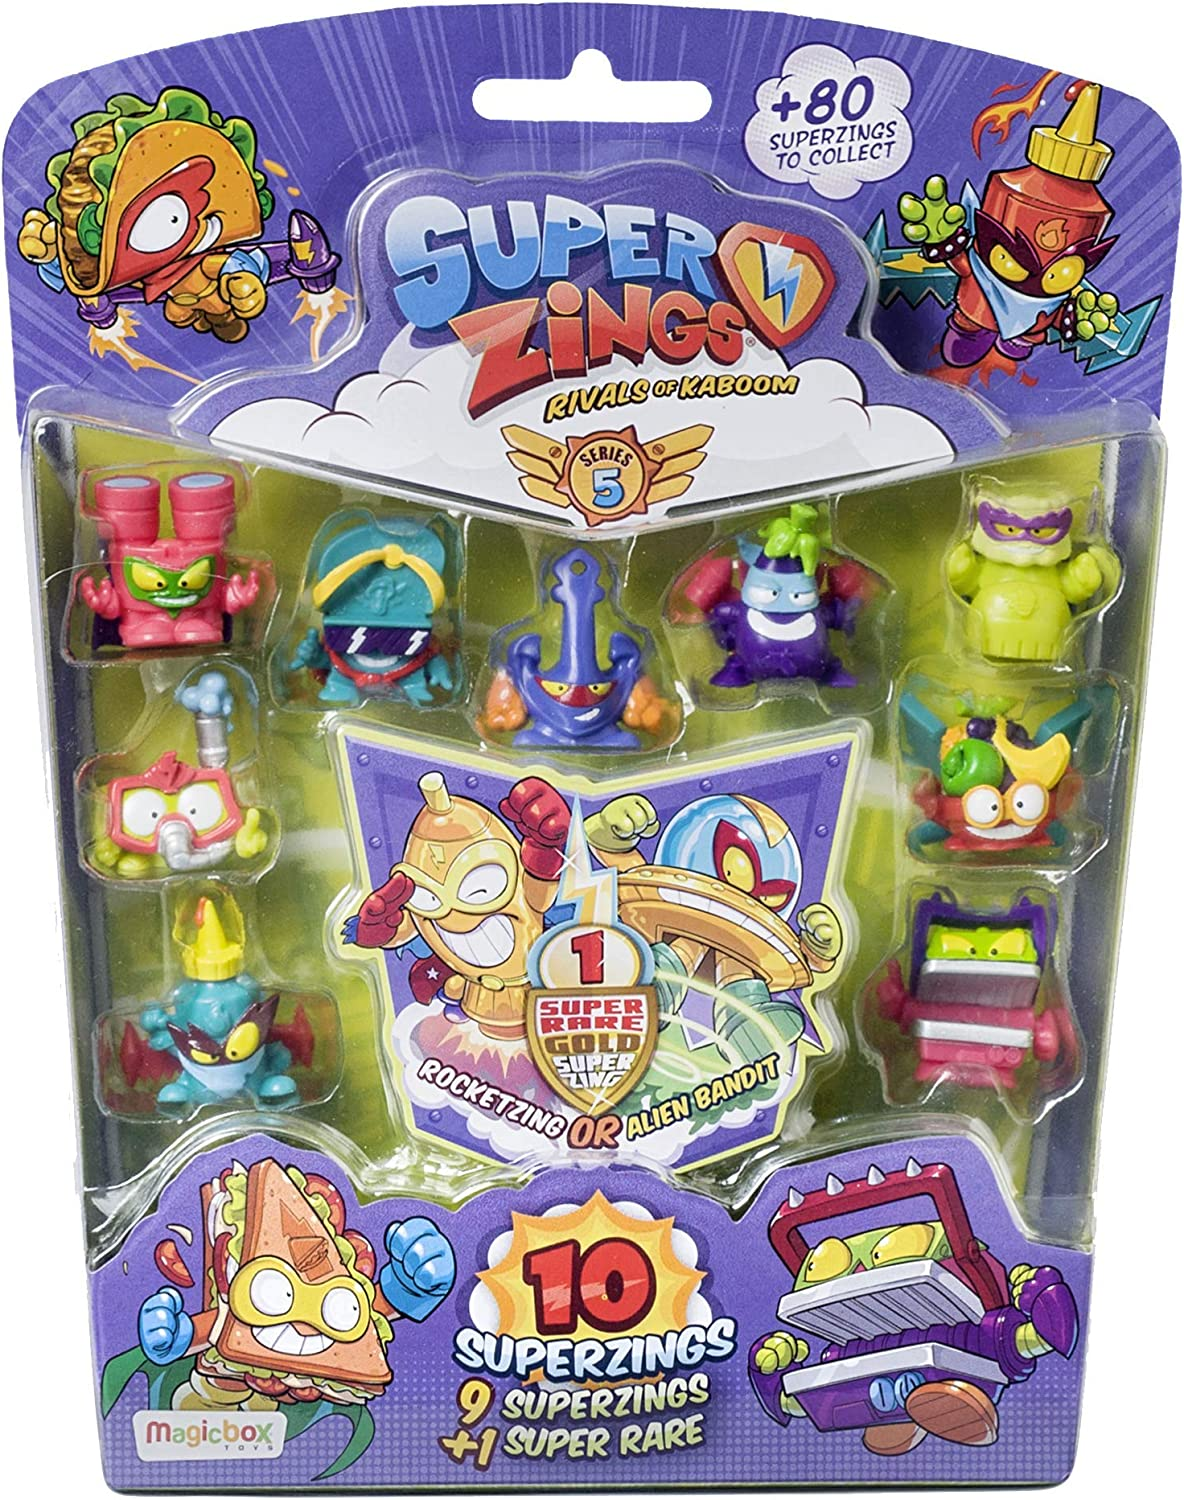 Súperzings- Blíster 10 Serie 5 Figuras coleccionables, Multicolor (Magic Box PSZ5B016IN00): Amazon.es: Juguetes y juegos